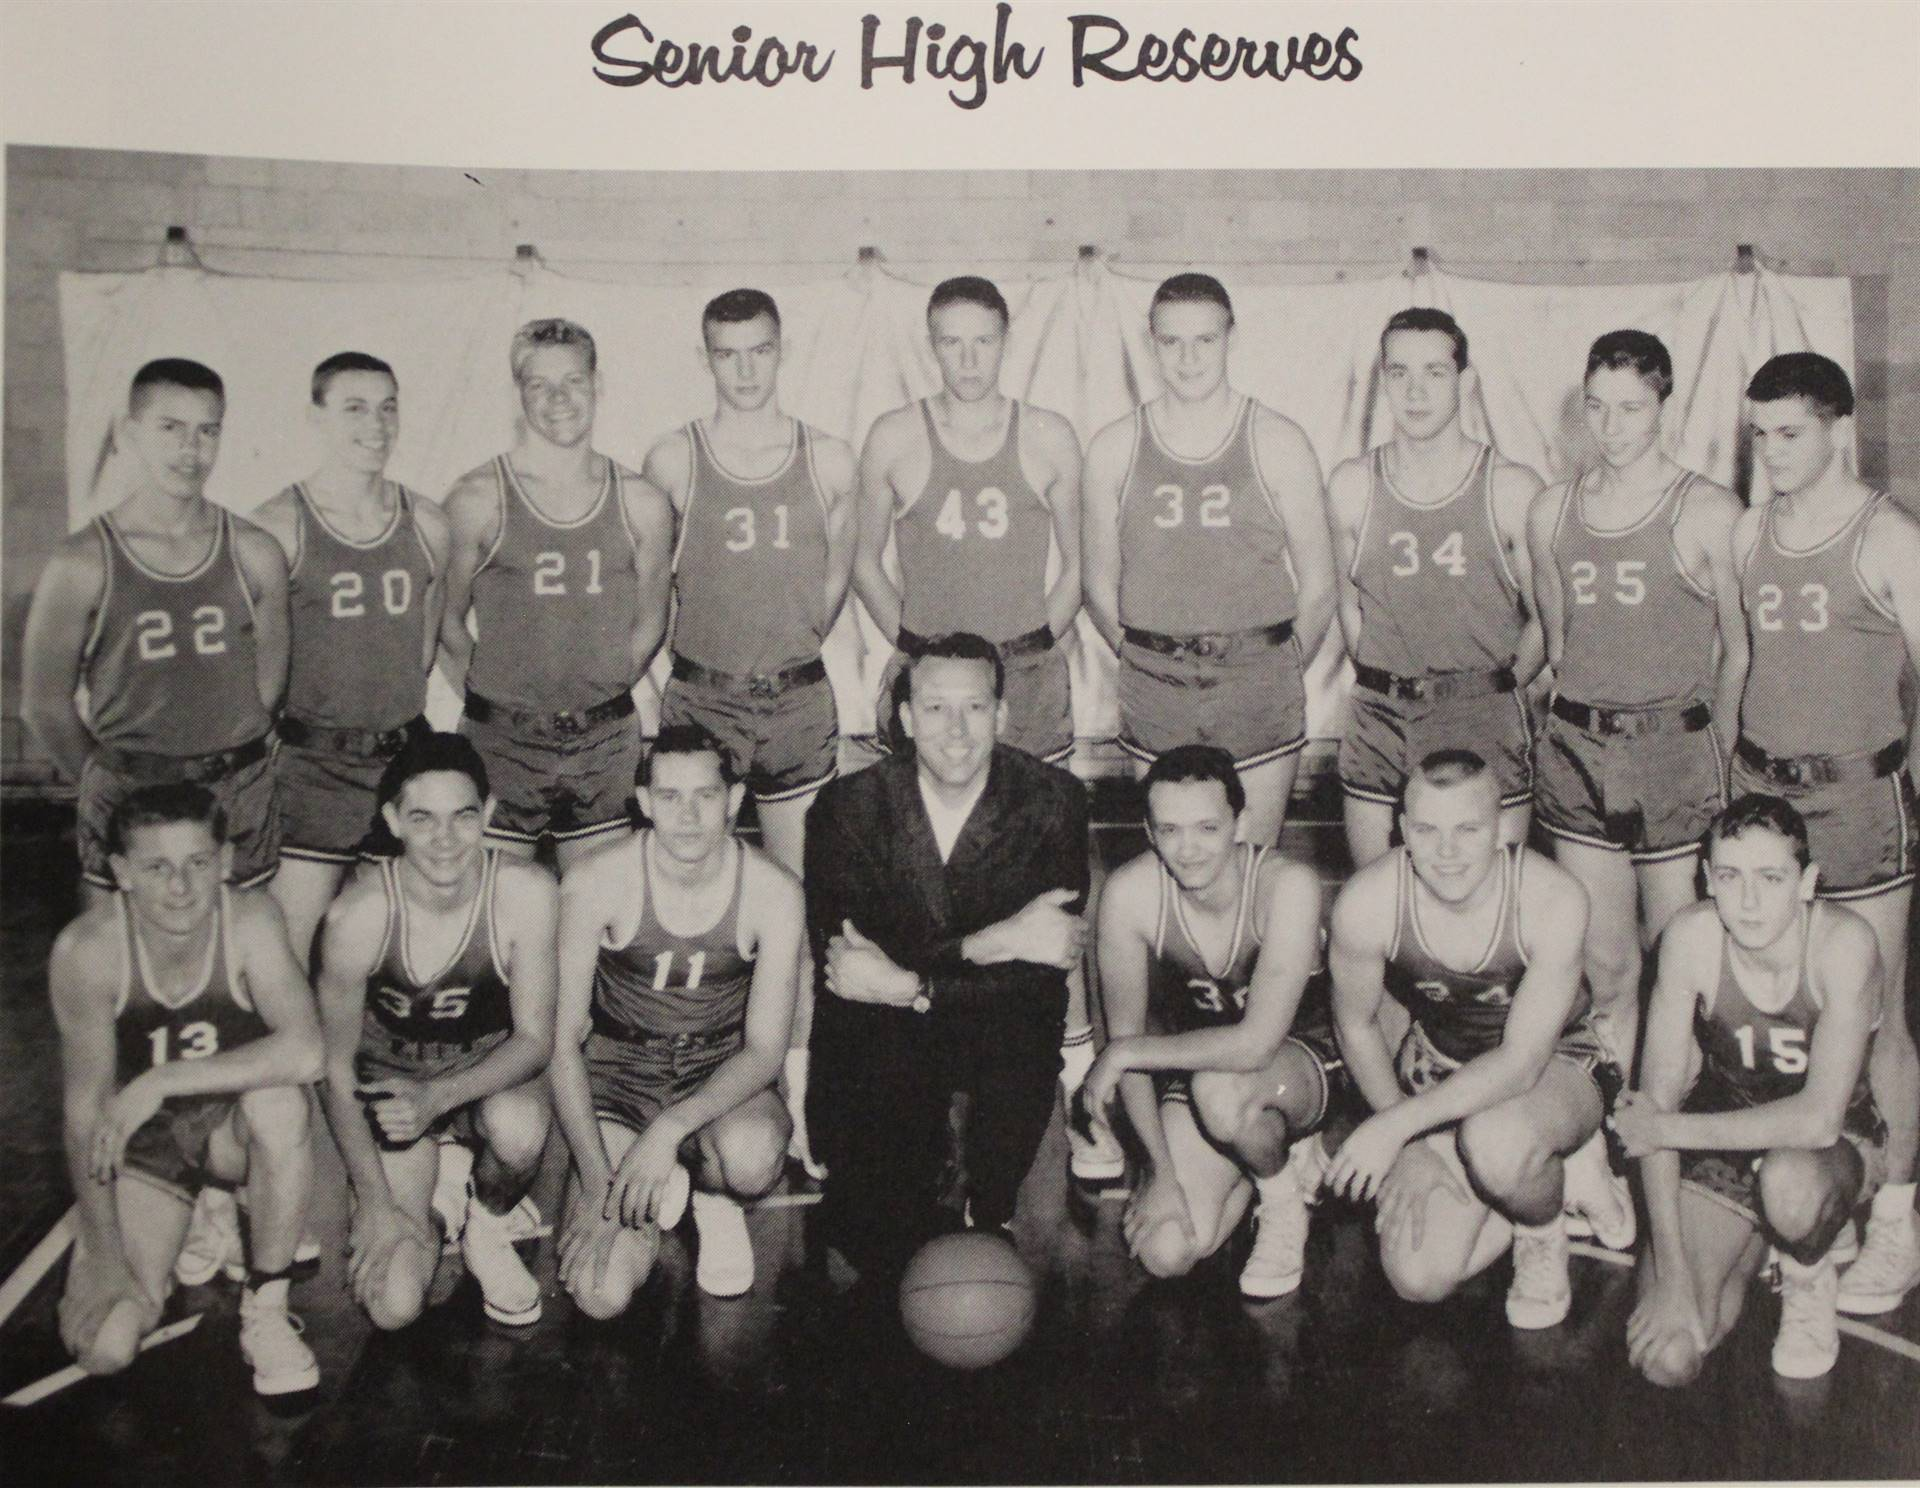 1964 Senior High Reserves